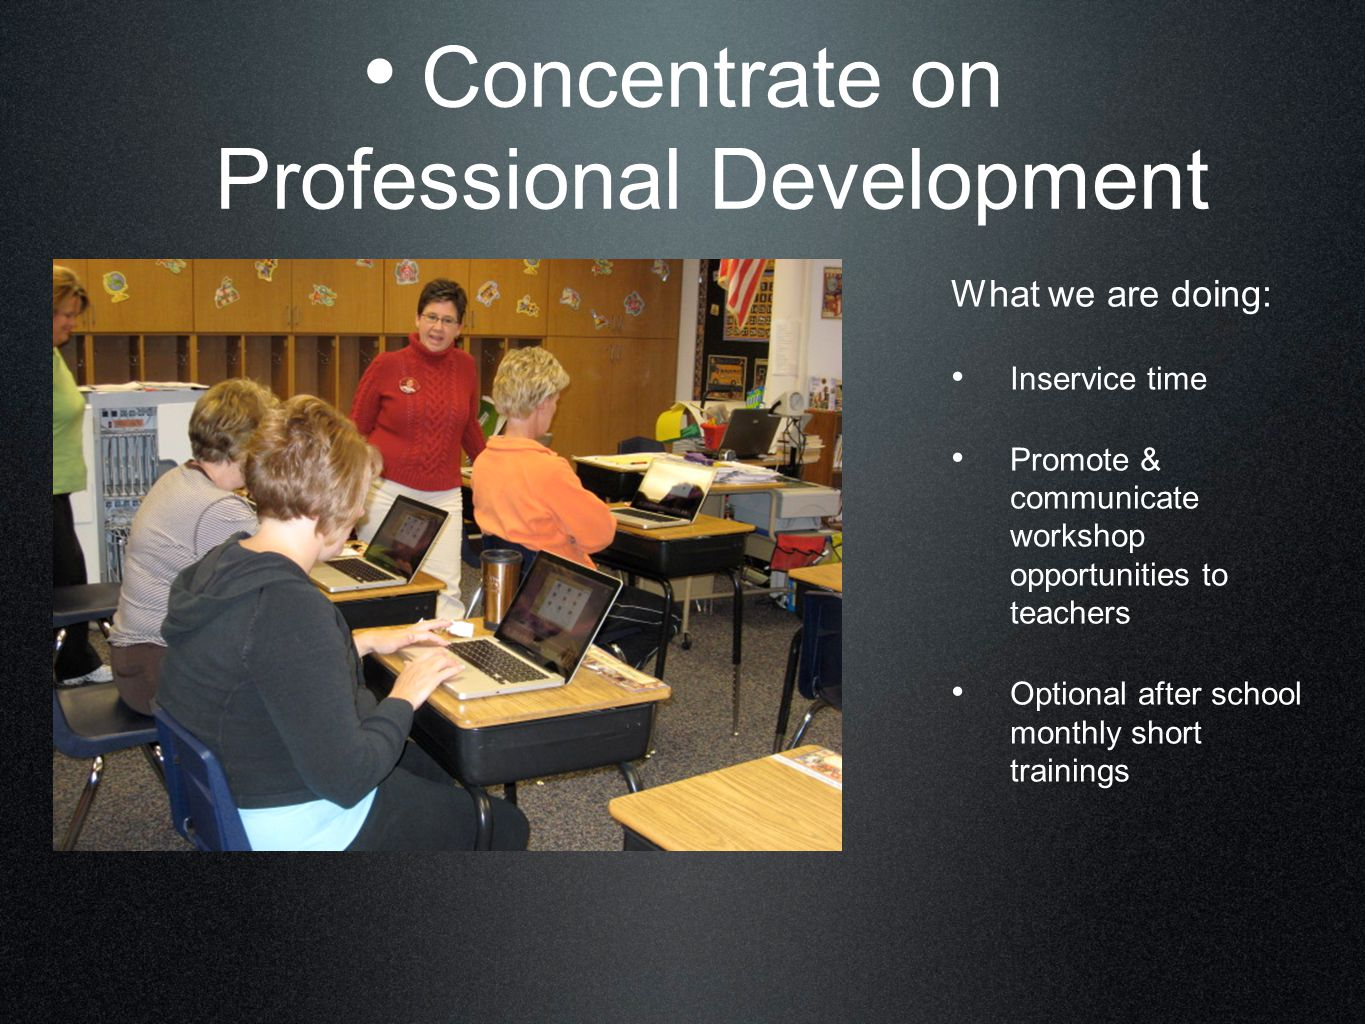 Concentrate on Professional Development What we are doing: Inservice time Promote & communicate workshop opportunities to teachers Optional after school monthly short trainings